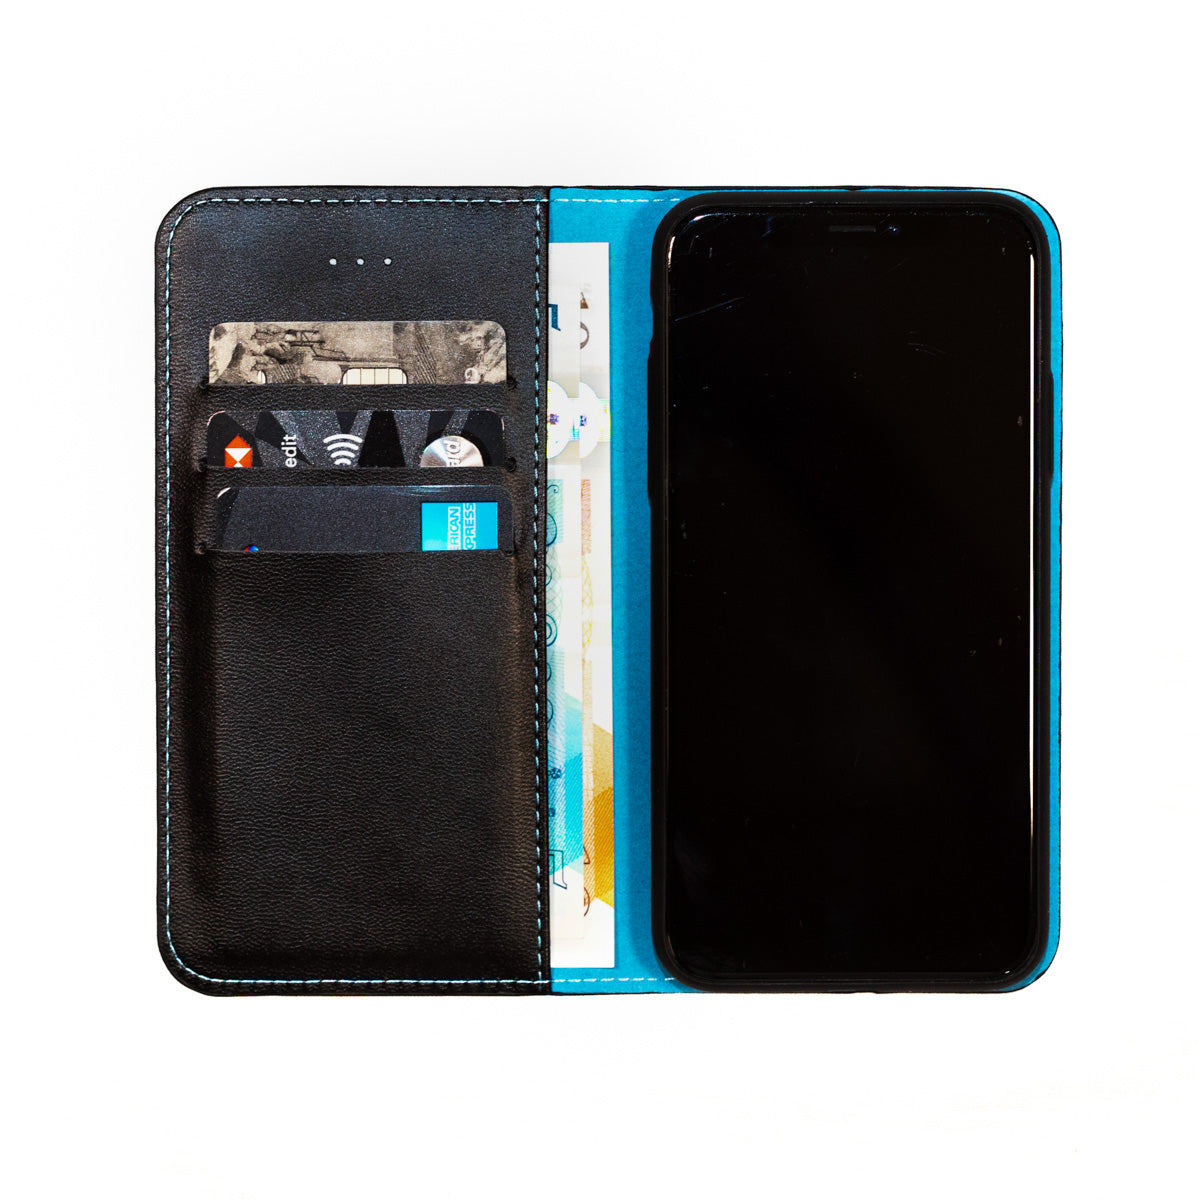 Blue Mobile Phone Radiation & Credit Card Information Theft Protection Case (87% less radiation)